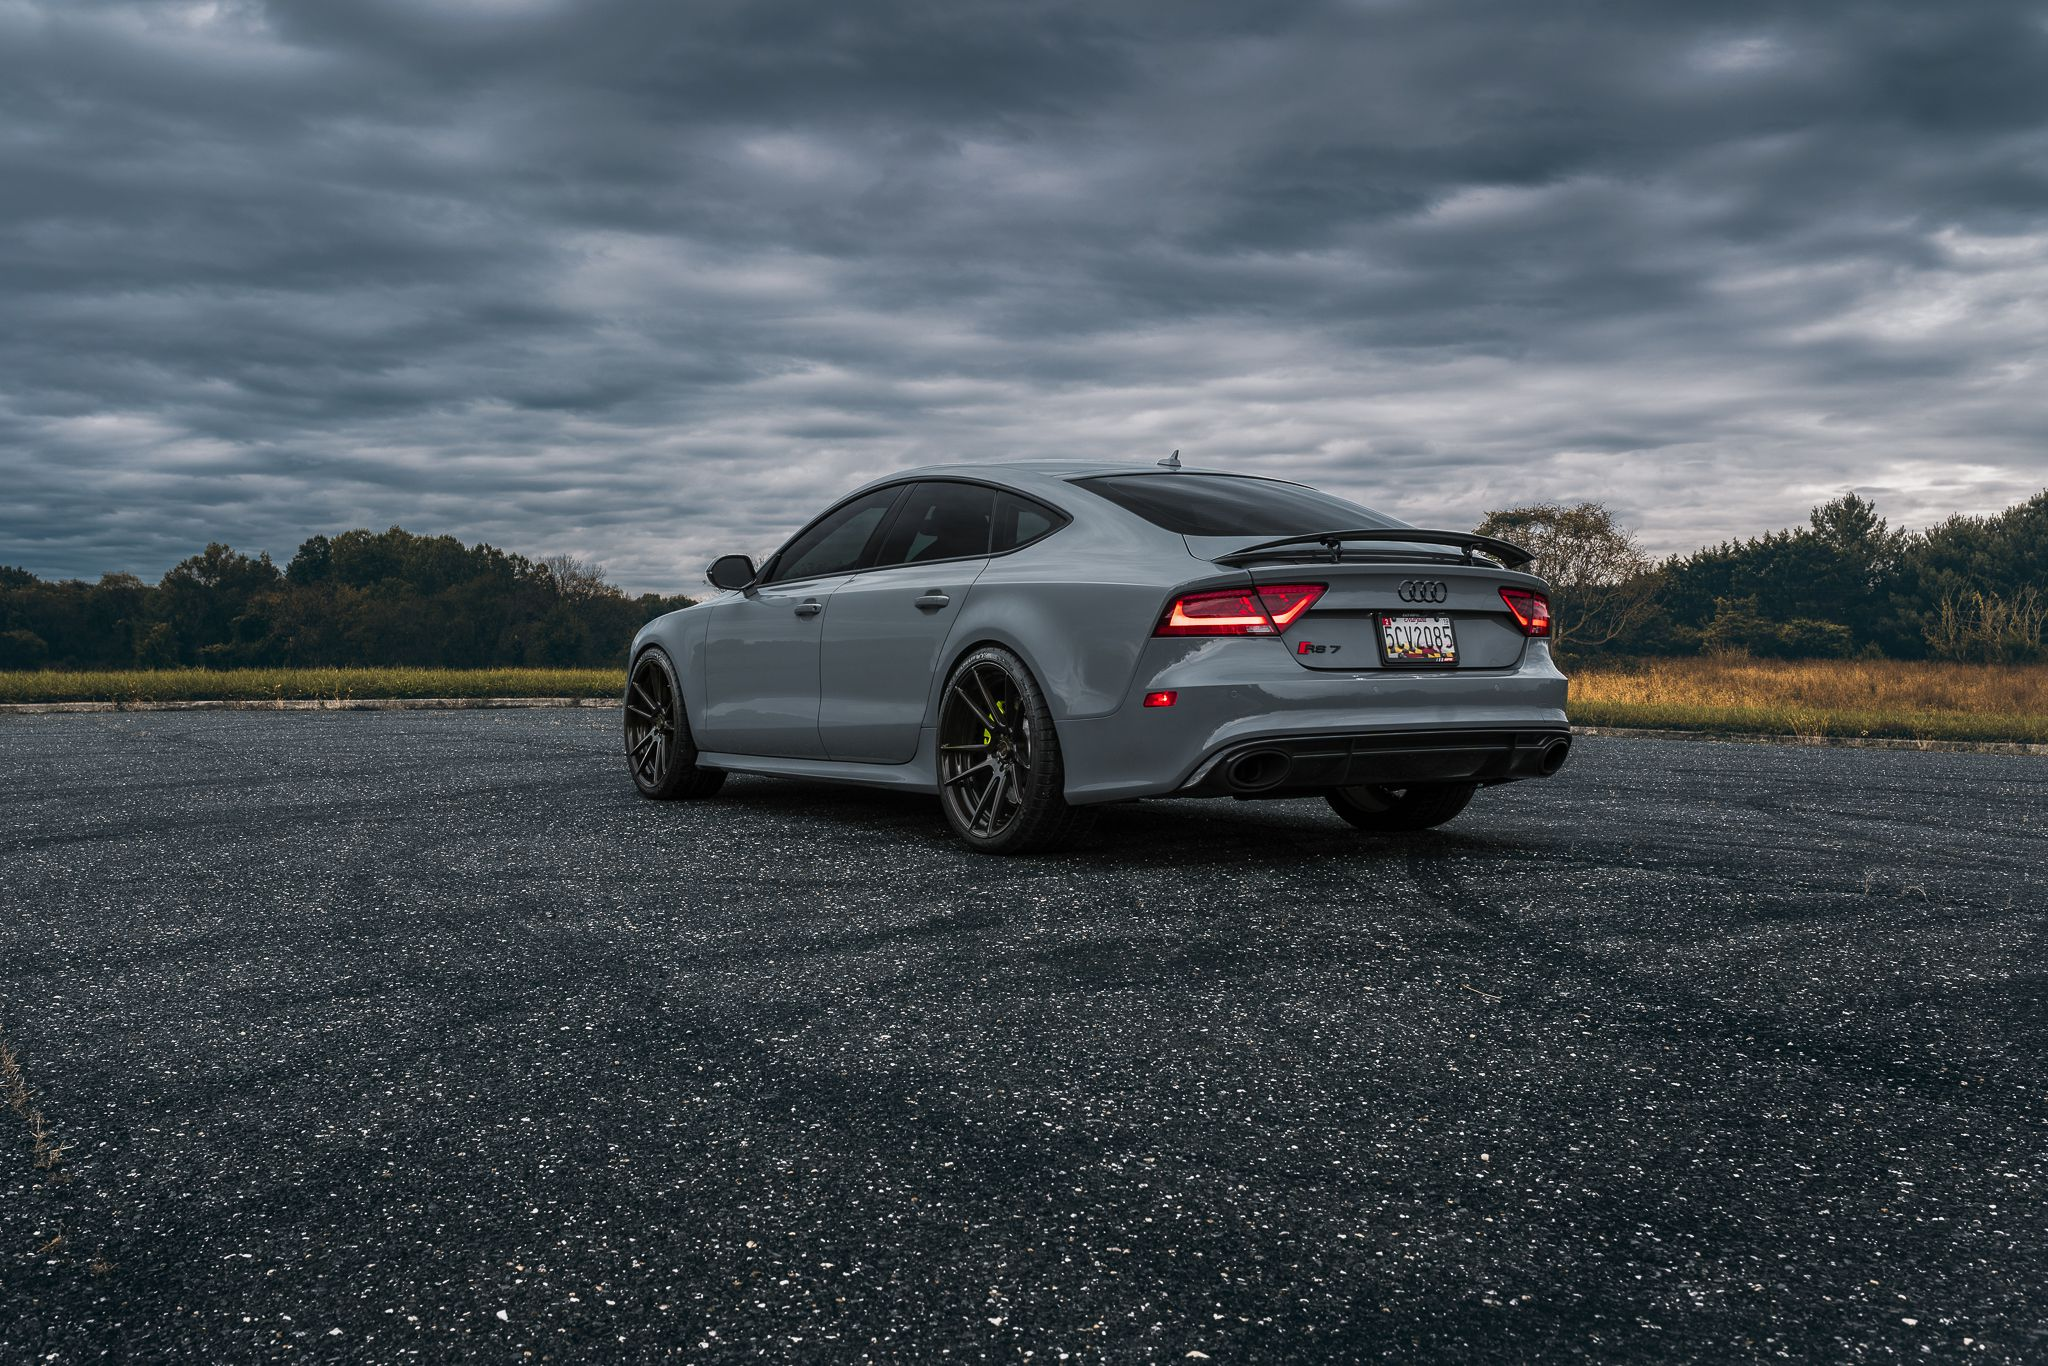 clouds, Audi RS7, sedan